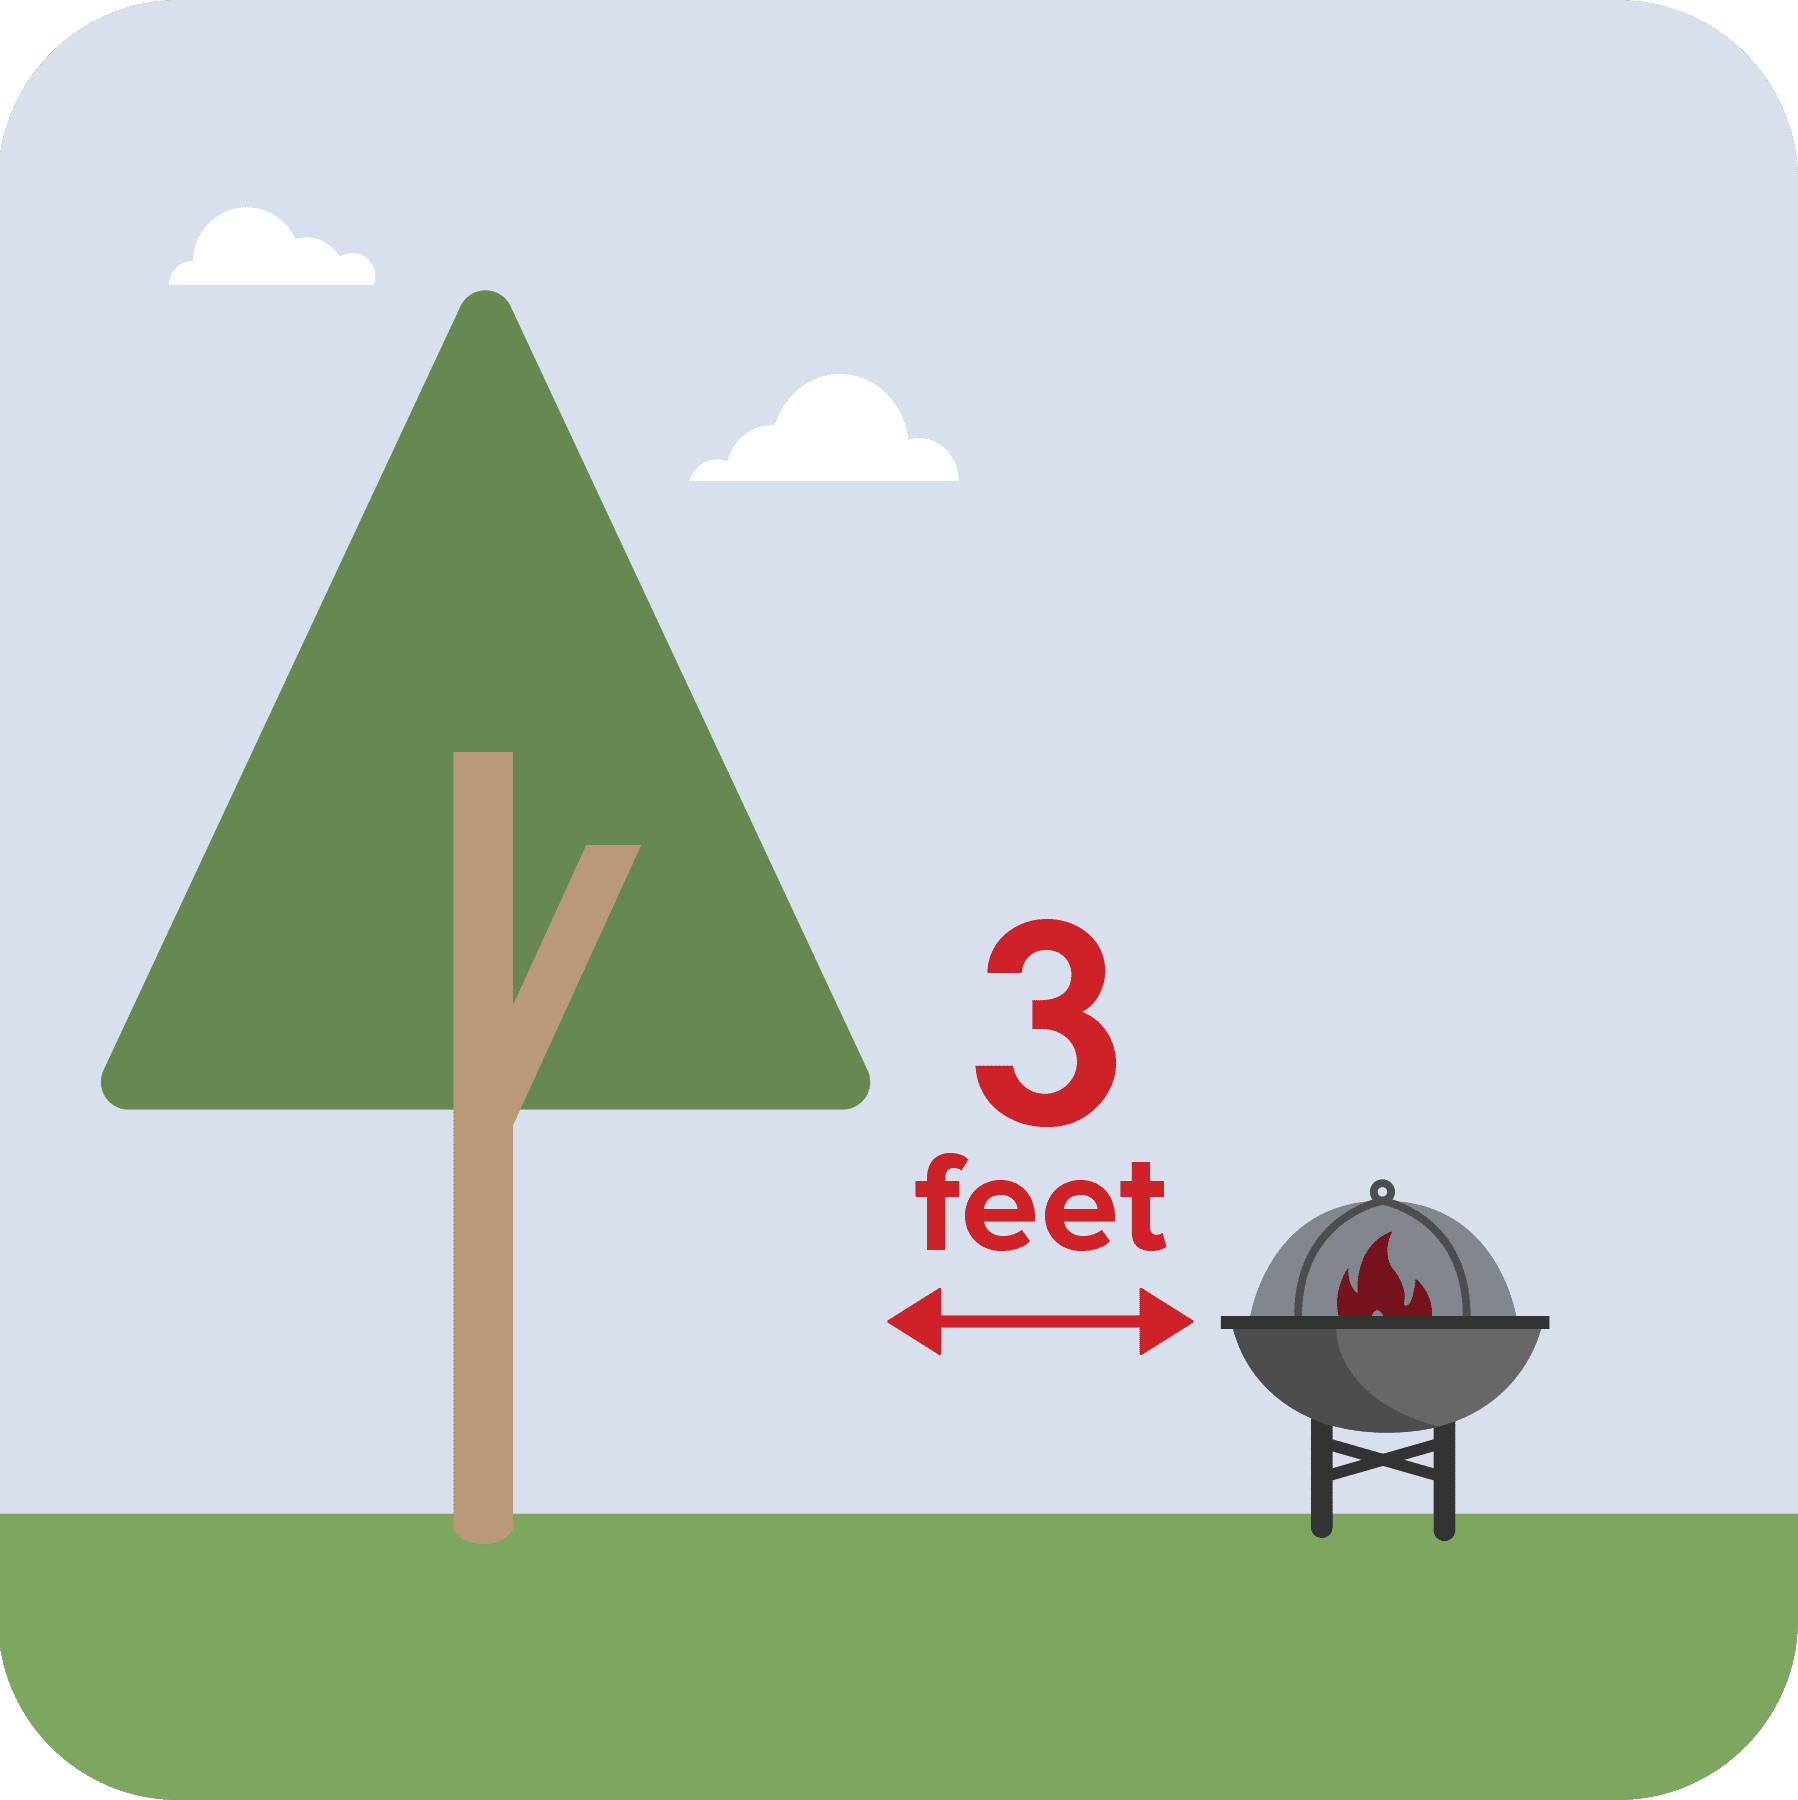 A fire pit shown 3 feet away from a tree.